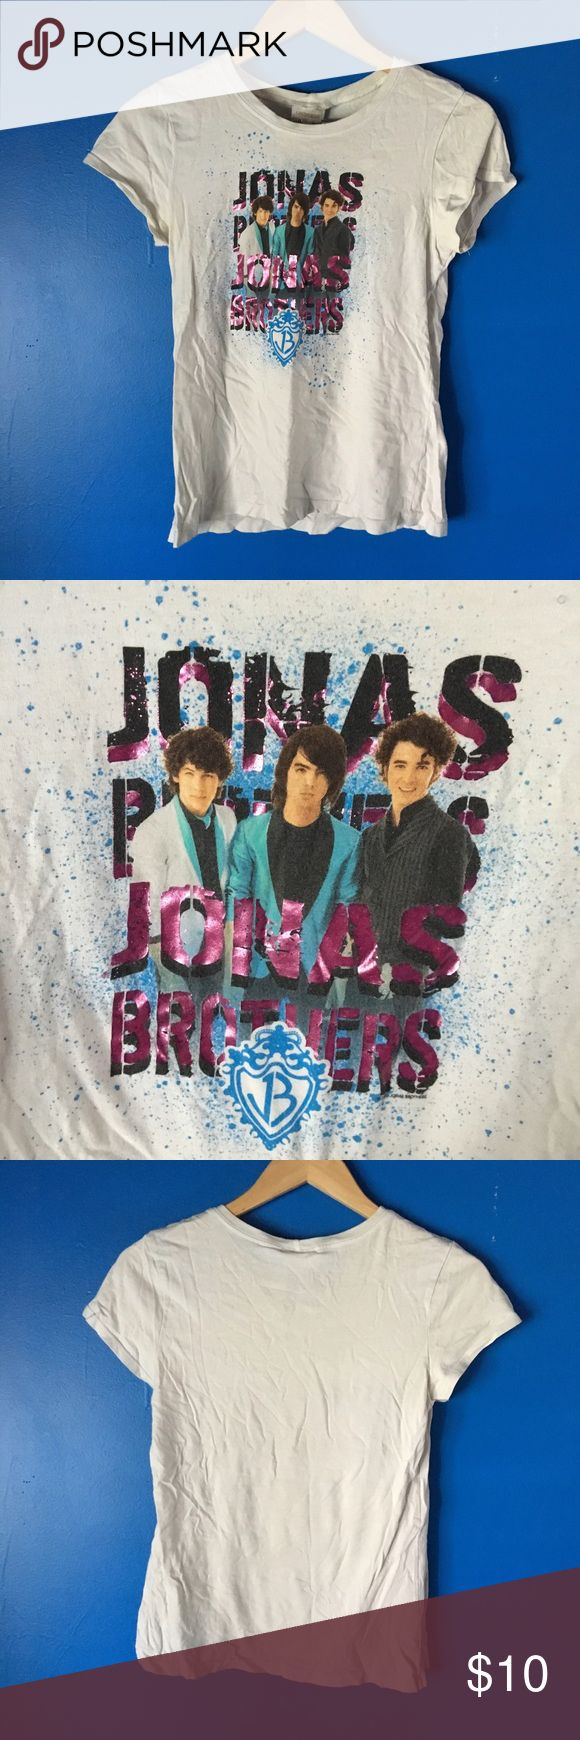 {Girls} Limited Too | White Jonas Brothers Tee Shirt features Nick Jonas, Joe Jonas (now lead singer for DNCE) and Kevin Jones. White tee shirt. Brand is Limited Too. Size girls 18 Like new condition no stains, rips or holes. 100% Cotton. Limited Too Shirts & Tops Tees - Short Sleeve